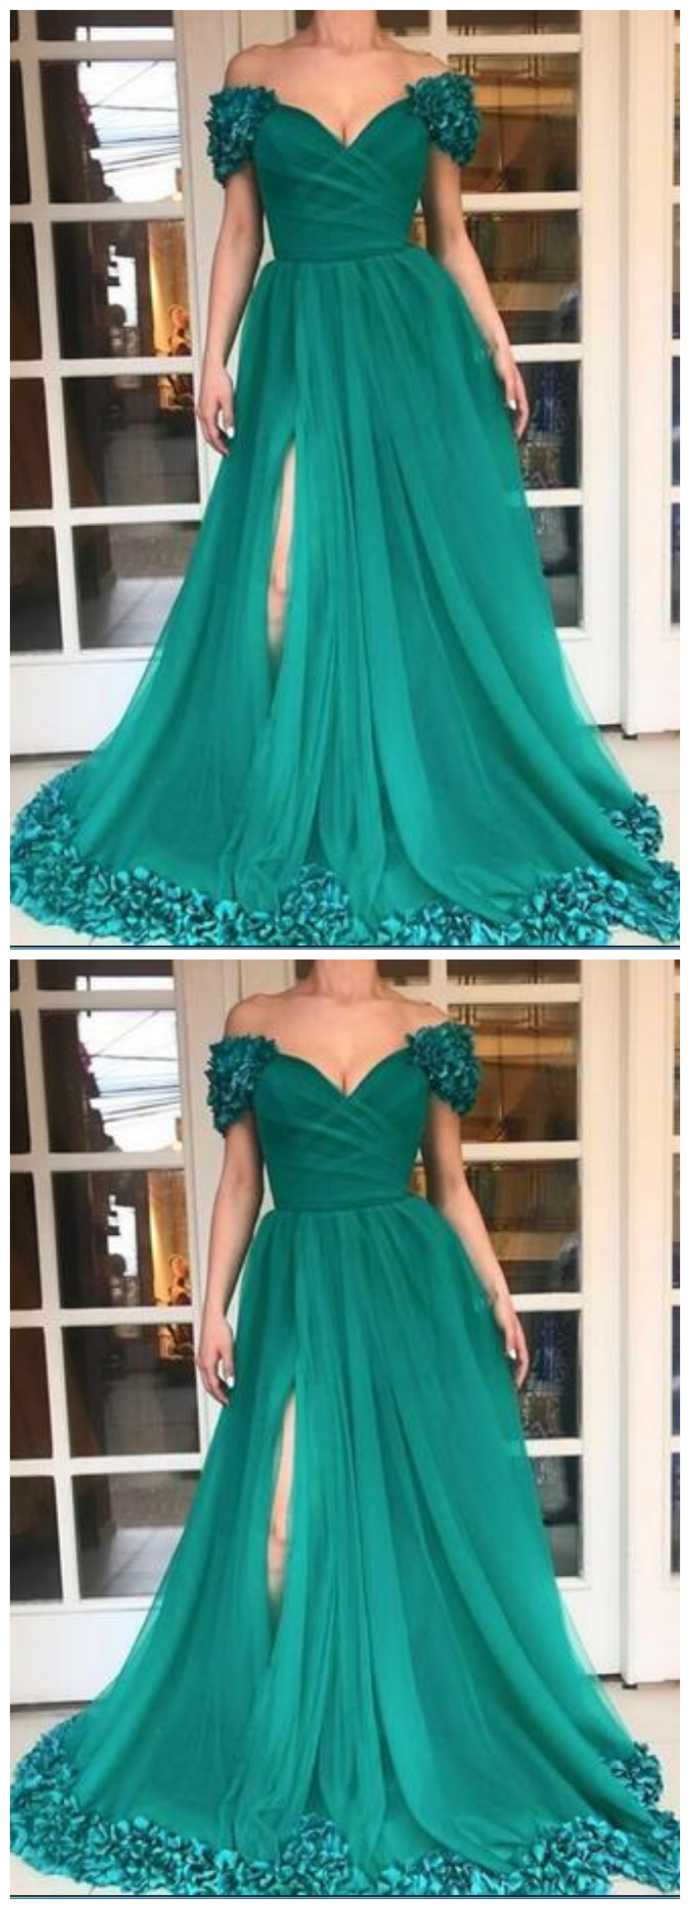 High Split Long Prom Dresses Custom Plus Size Hunter Green Tulle A Line Off